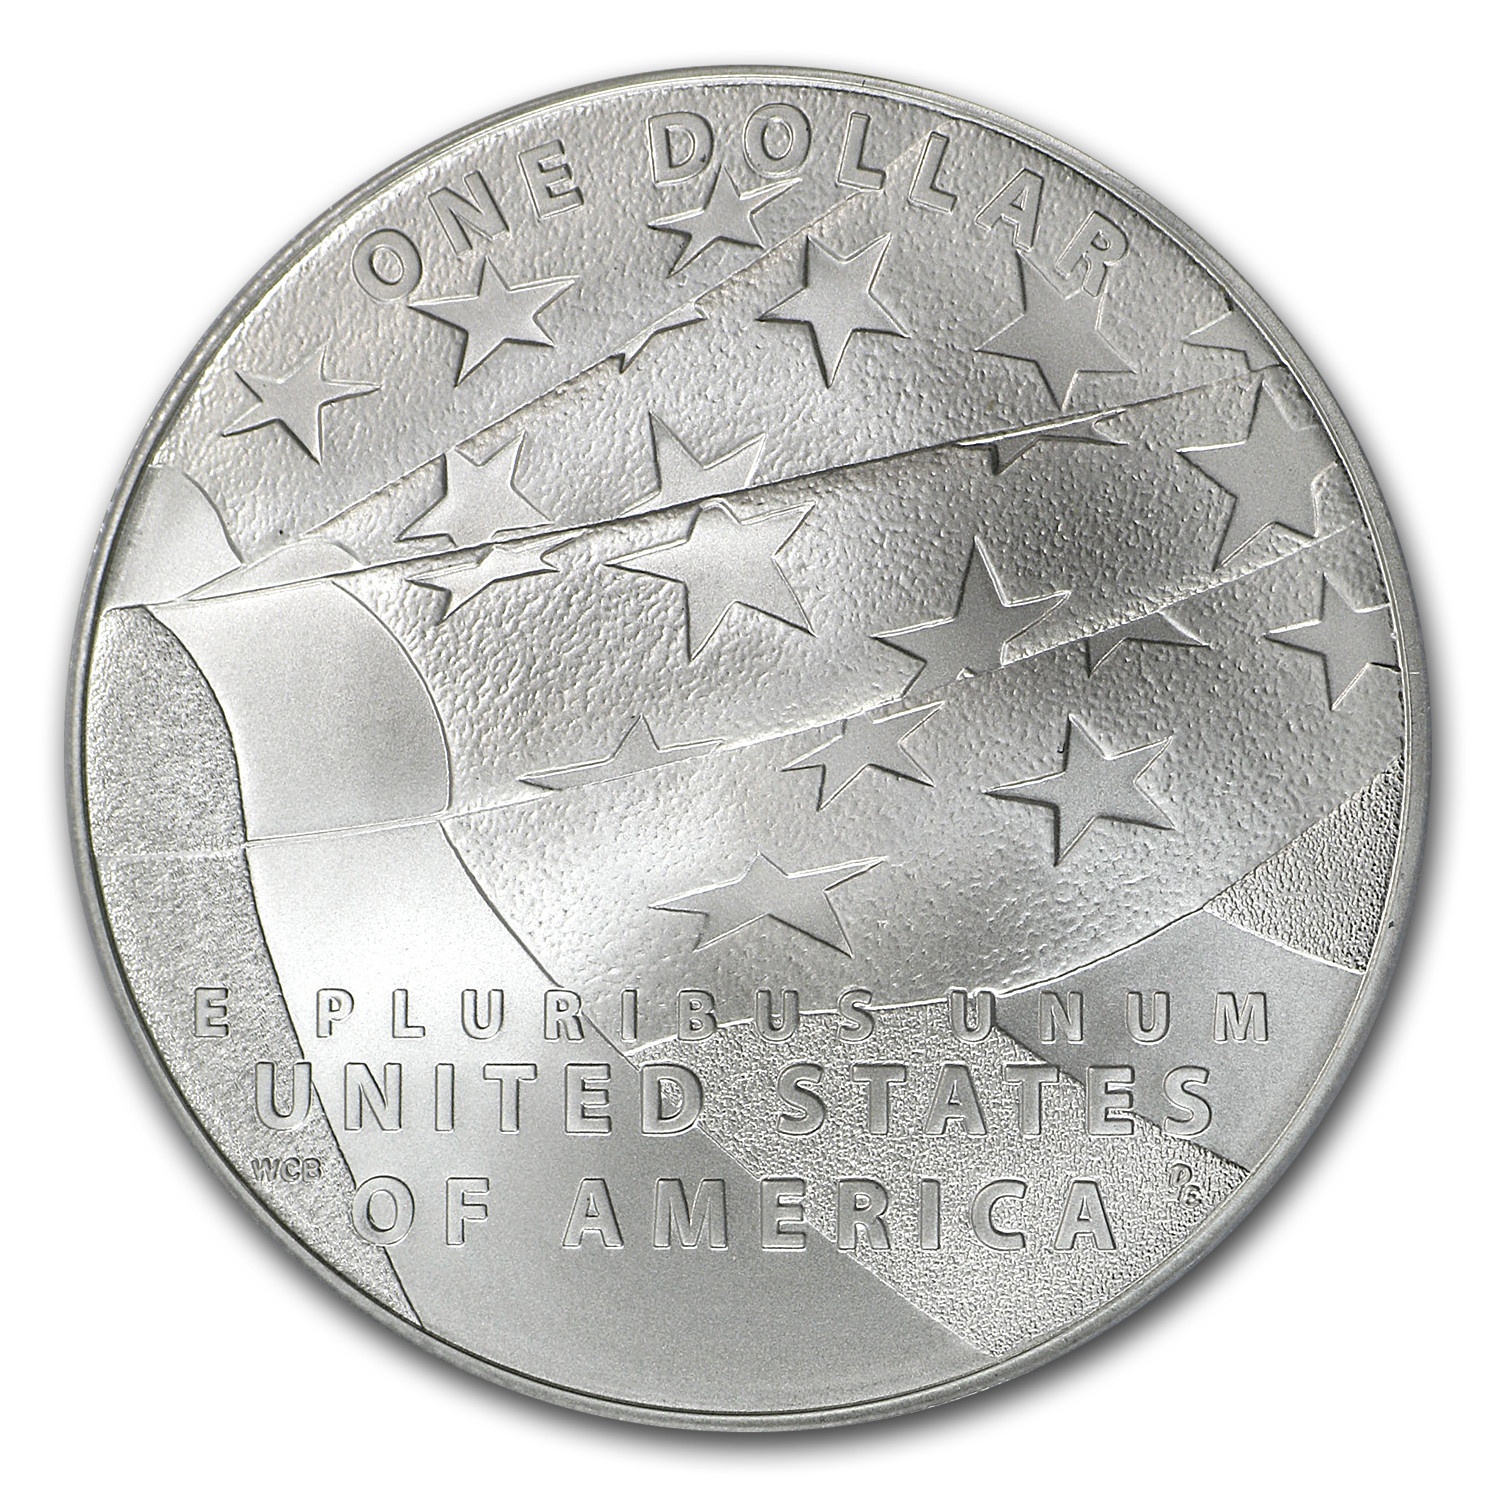 2012-P Star Spangled Banner $1 Silver Commemorative MS-70 PCGS